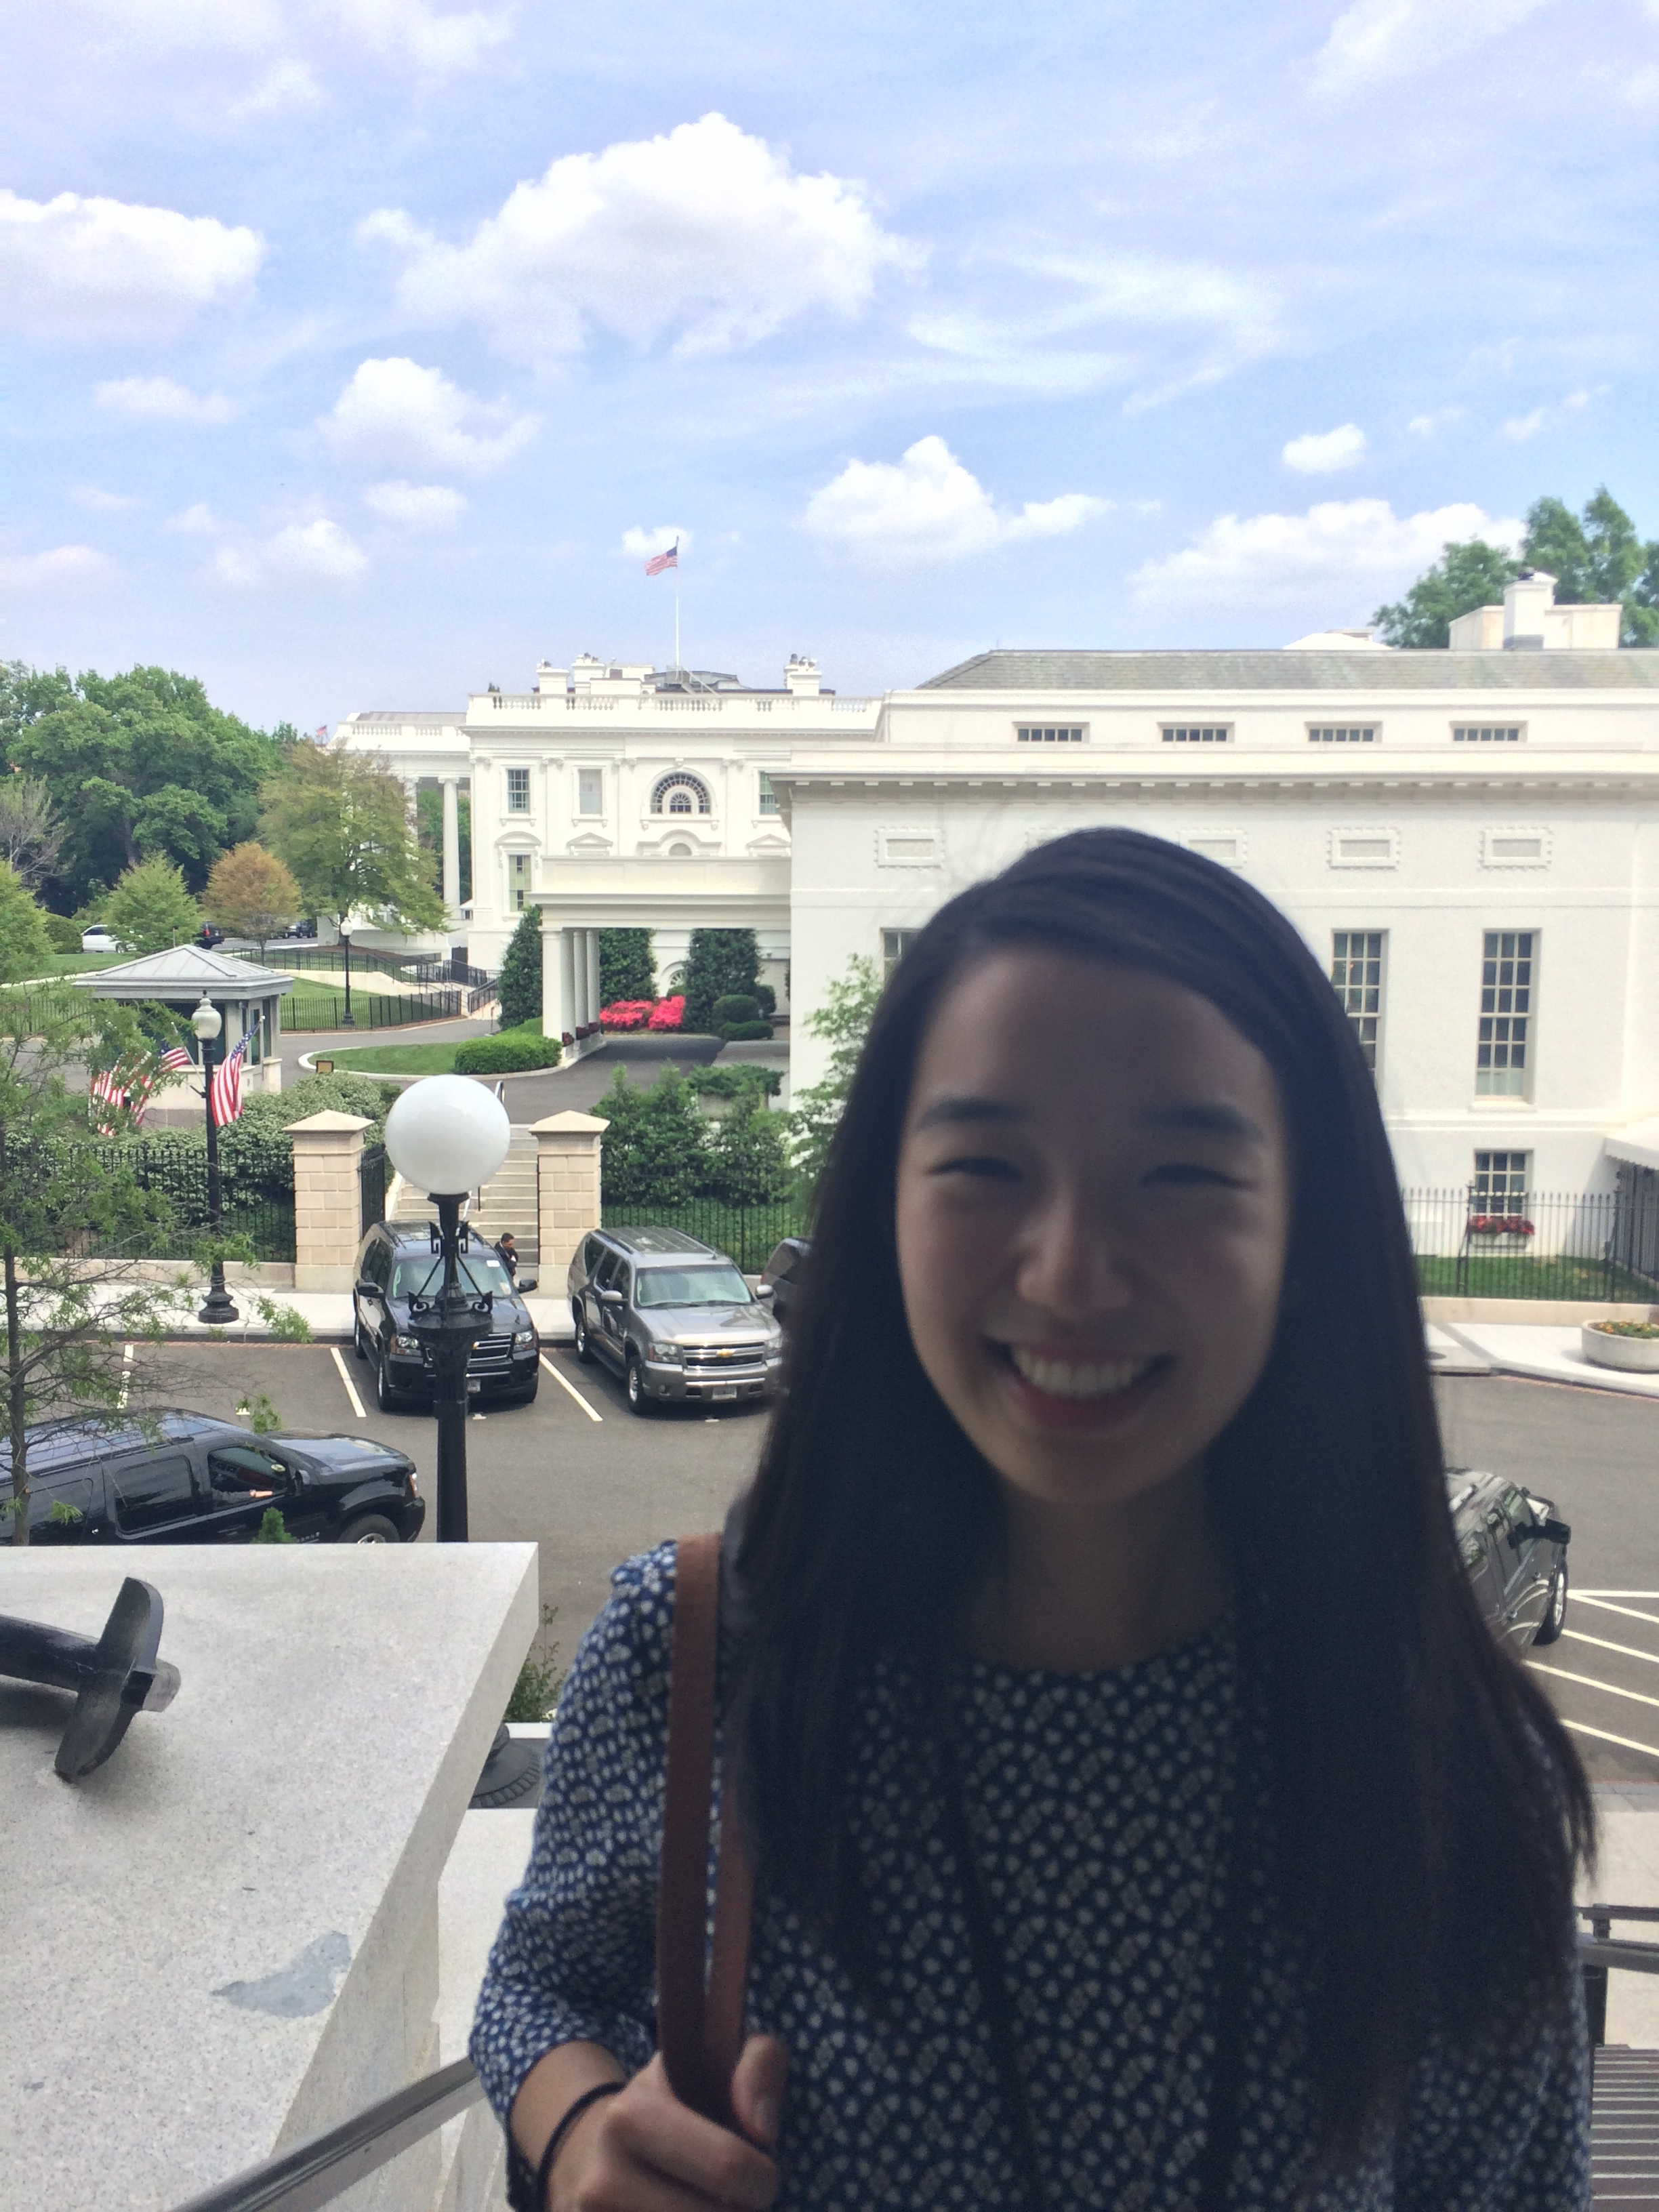 On one of my last days, I took a picture with the West Wing (behind me). You can see the White House mansion further back!